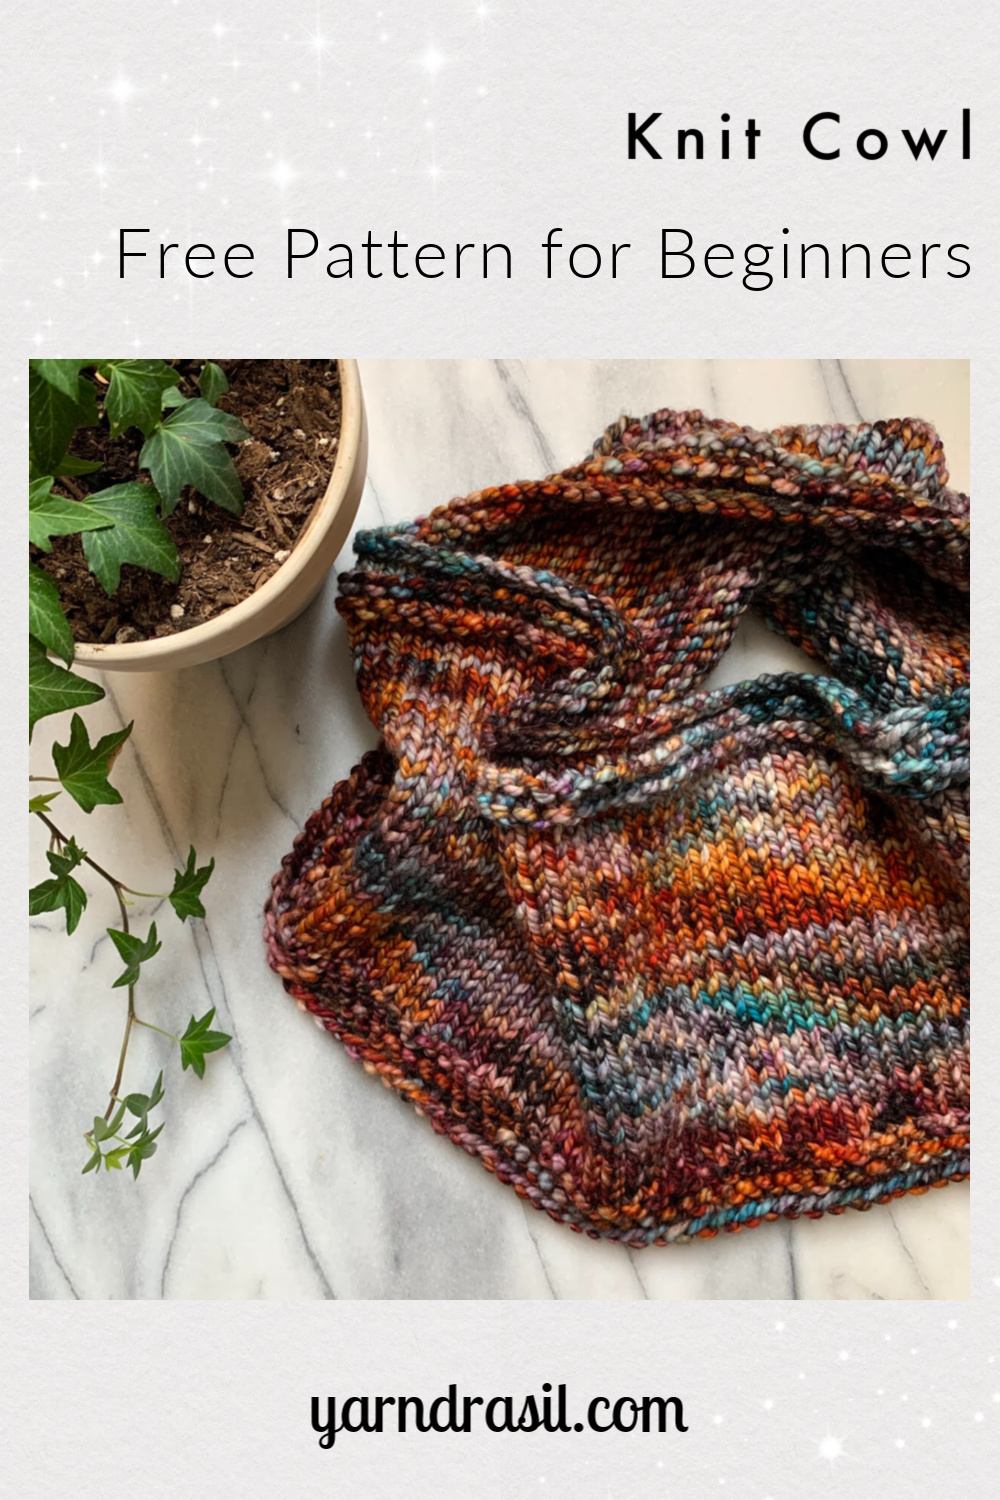 Knit Cowl for Beginners